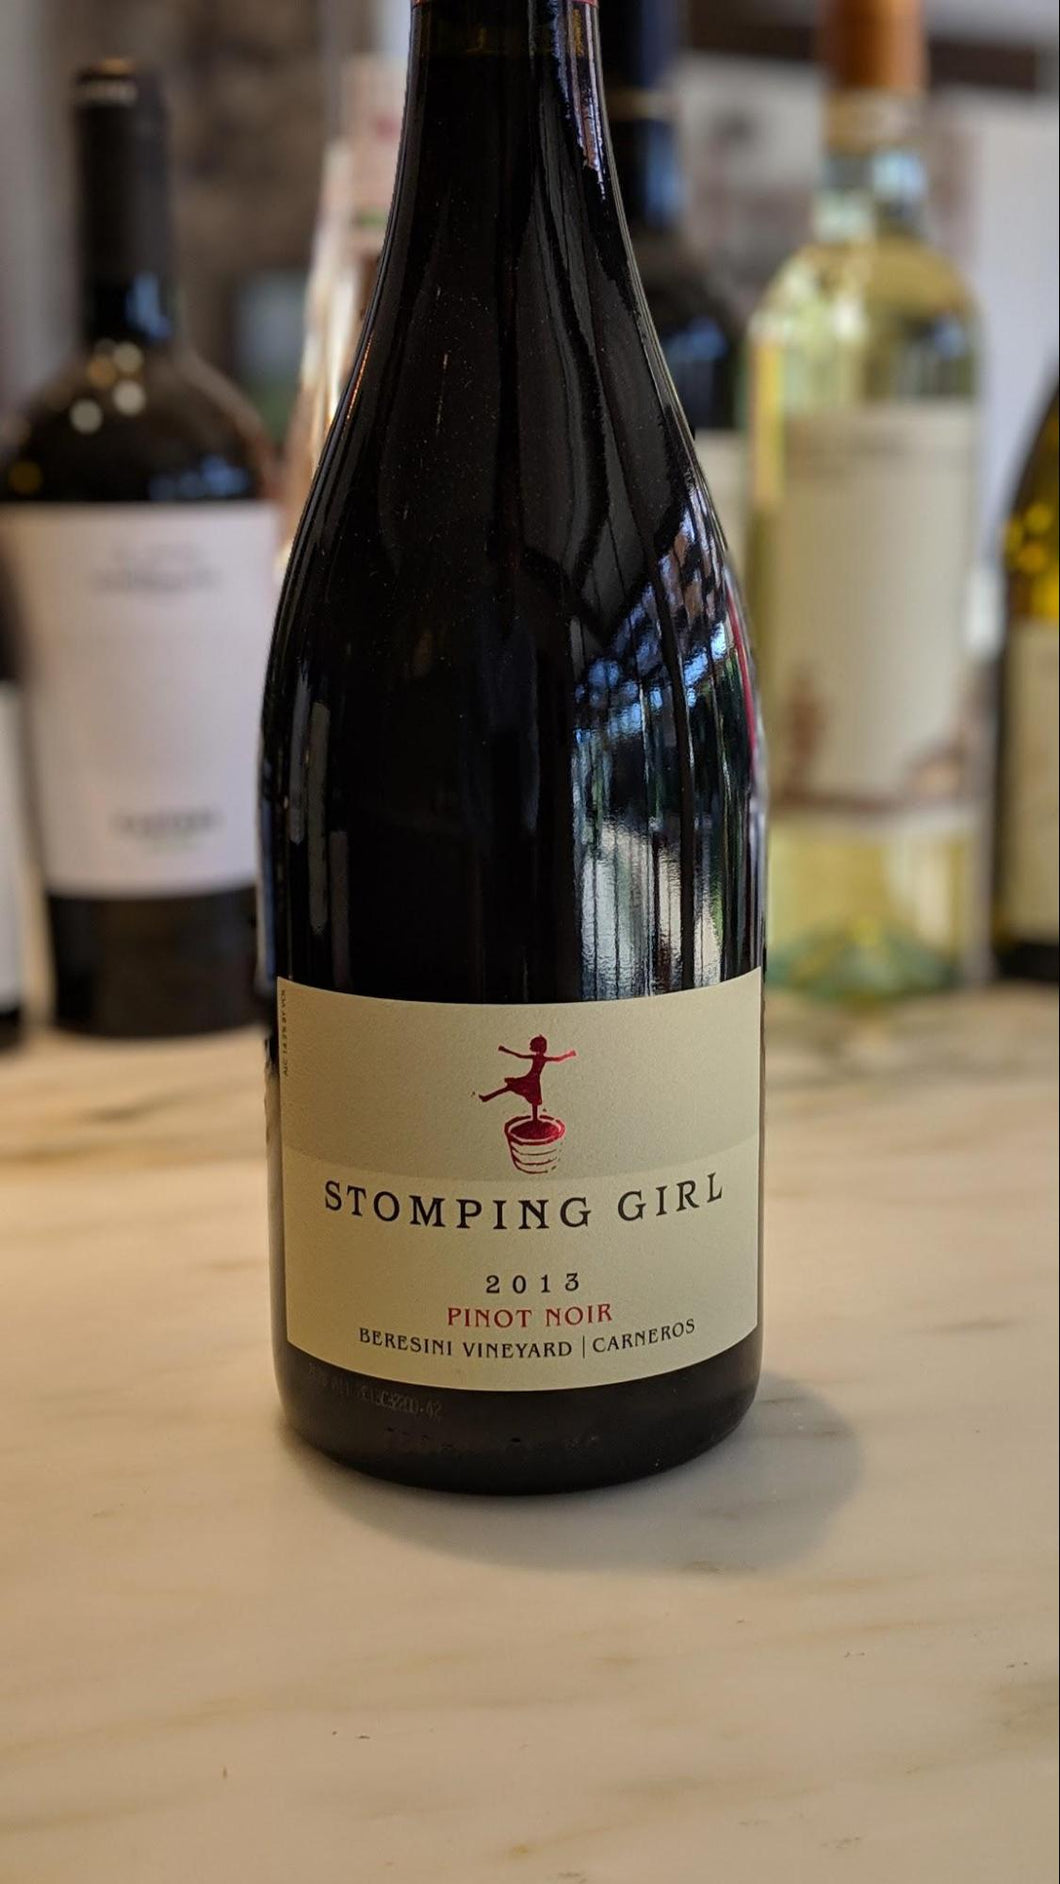 Stomping Girl - 2013 Pinot Noir, Beresini Vineyard - Carneros, Napa Valley, California